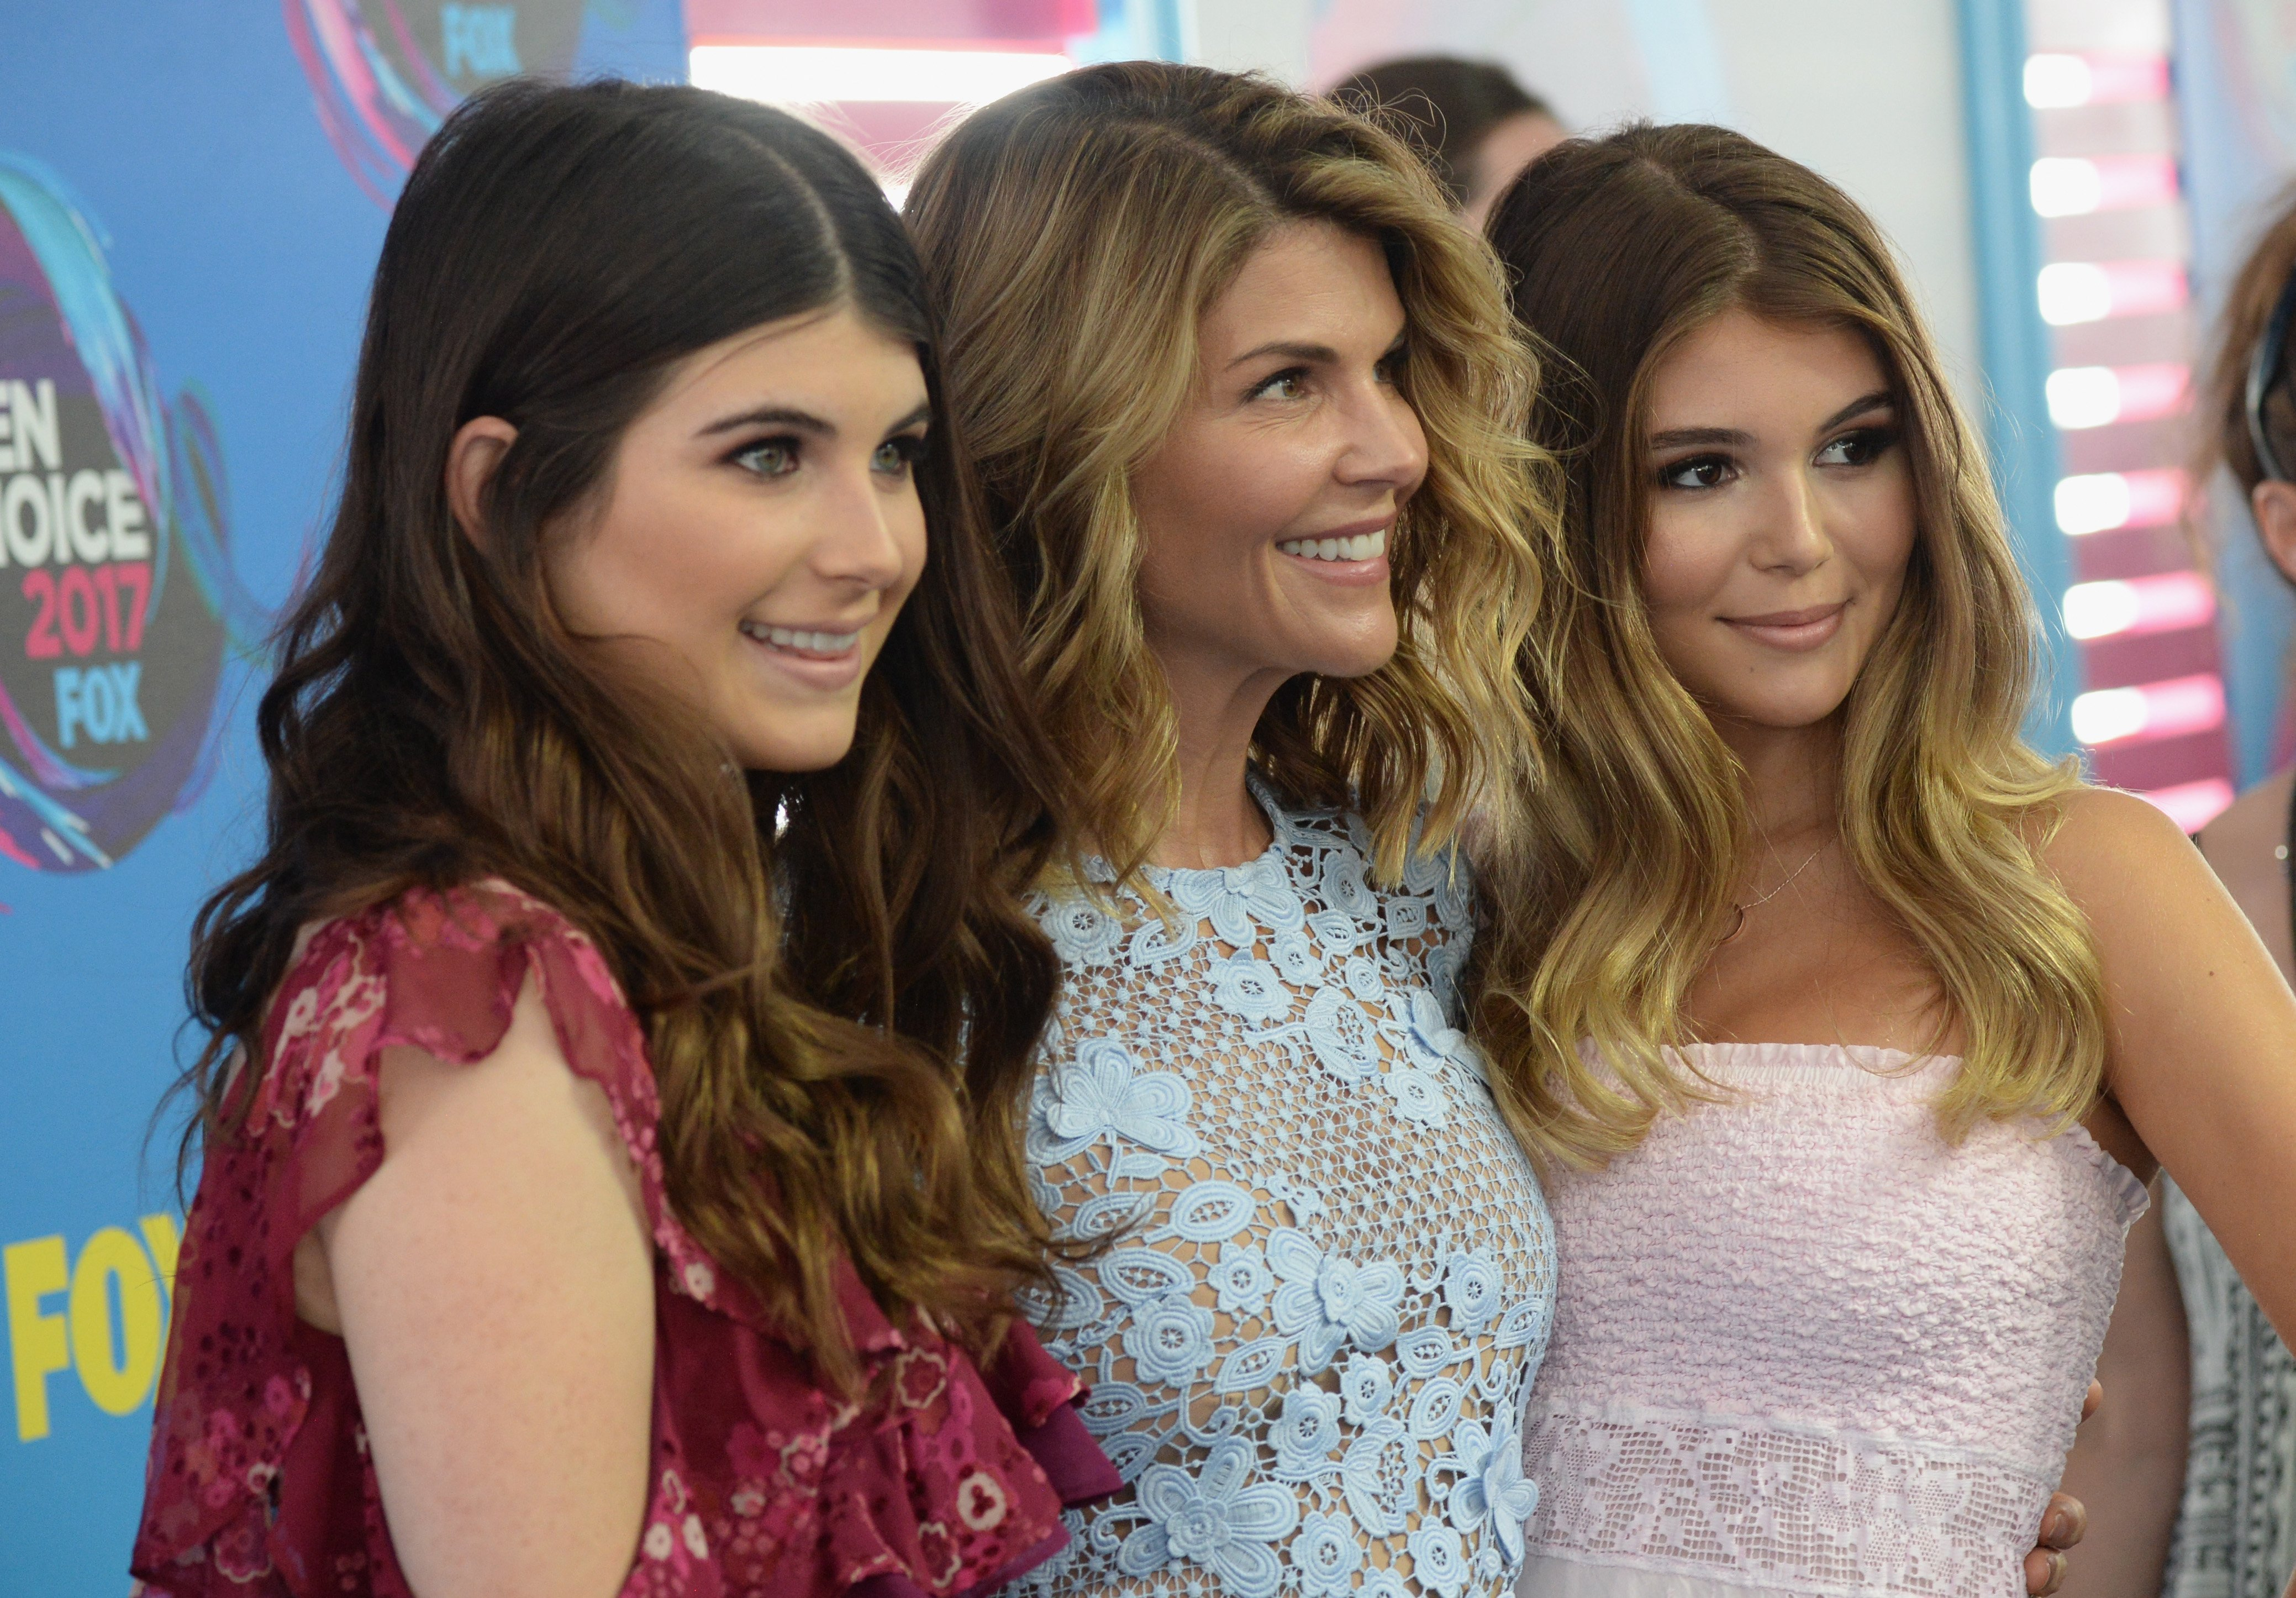 Lori Loughlin with daughters Olivia and Isabella at the 2017 Teen Choice Awards in Los Angeles, California | Photo: Getty Images